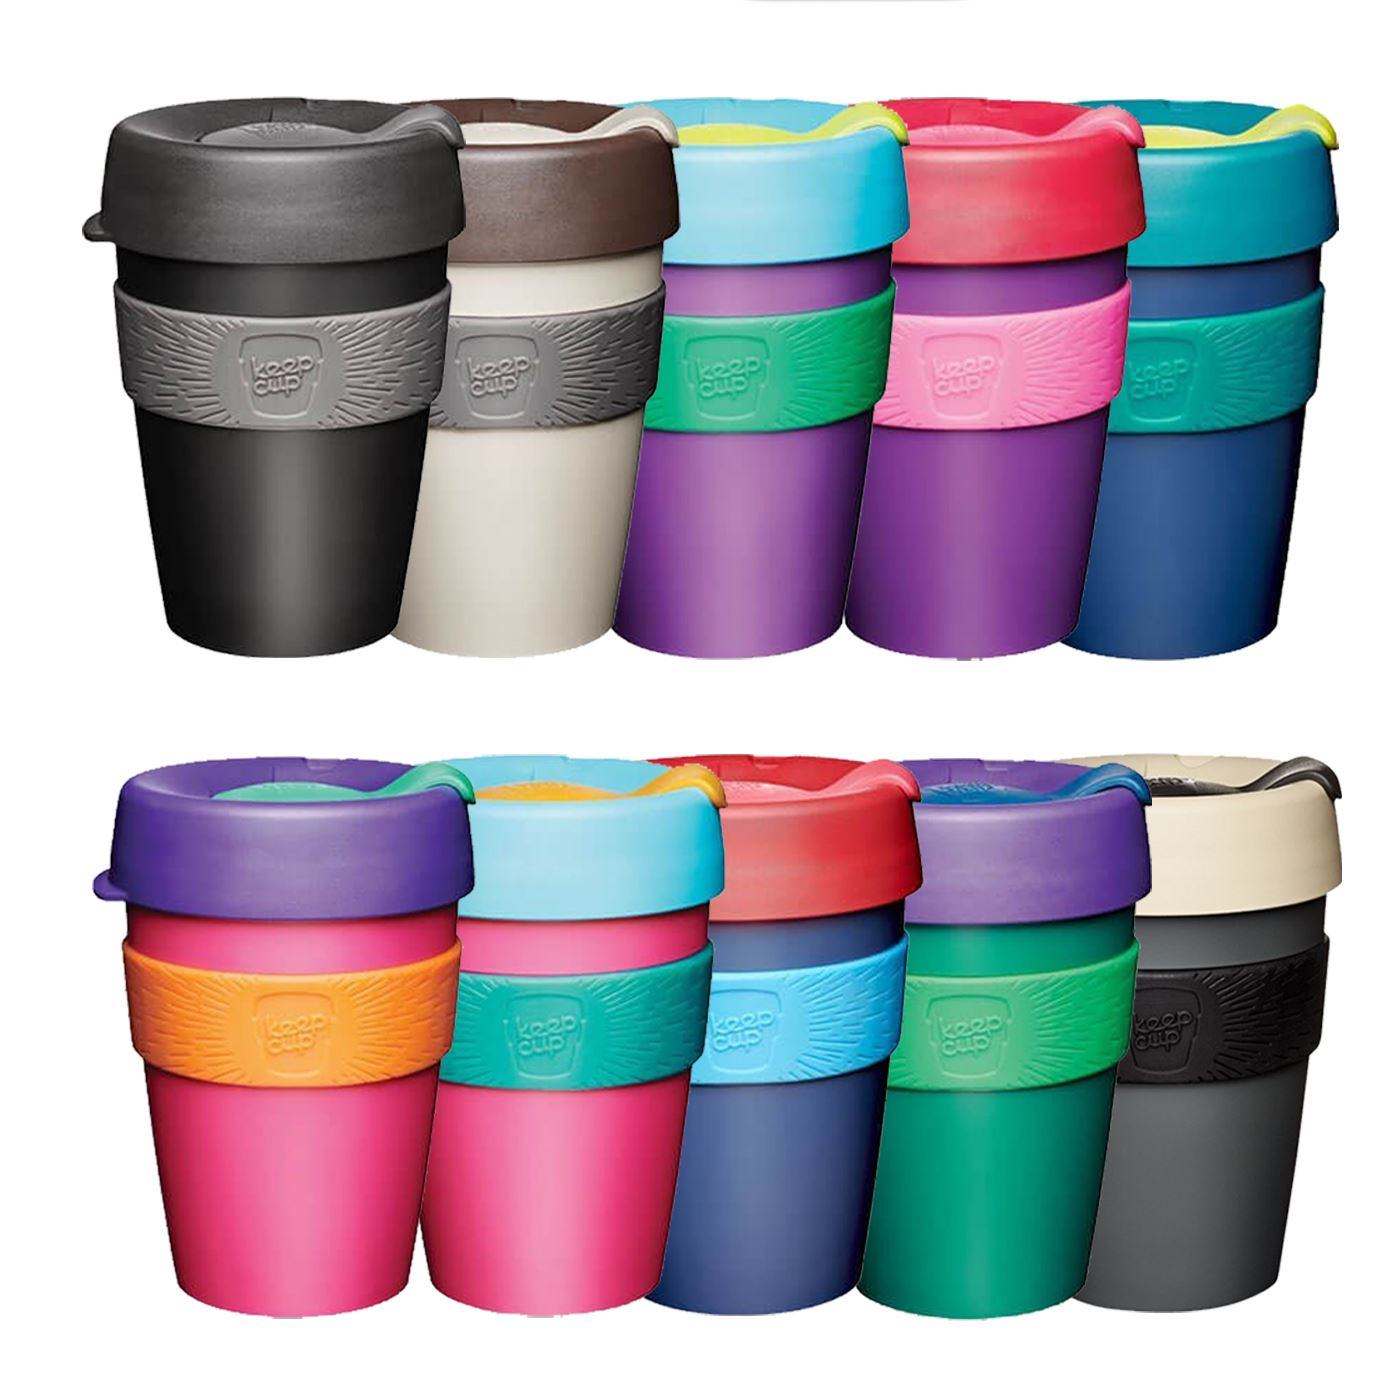 Cup About New Keepcup Original Reusable Coffee Mug Travel Range Details Changemakers CsdrthQ